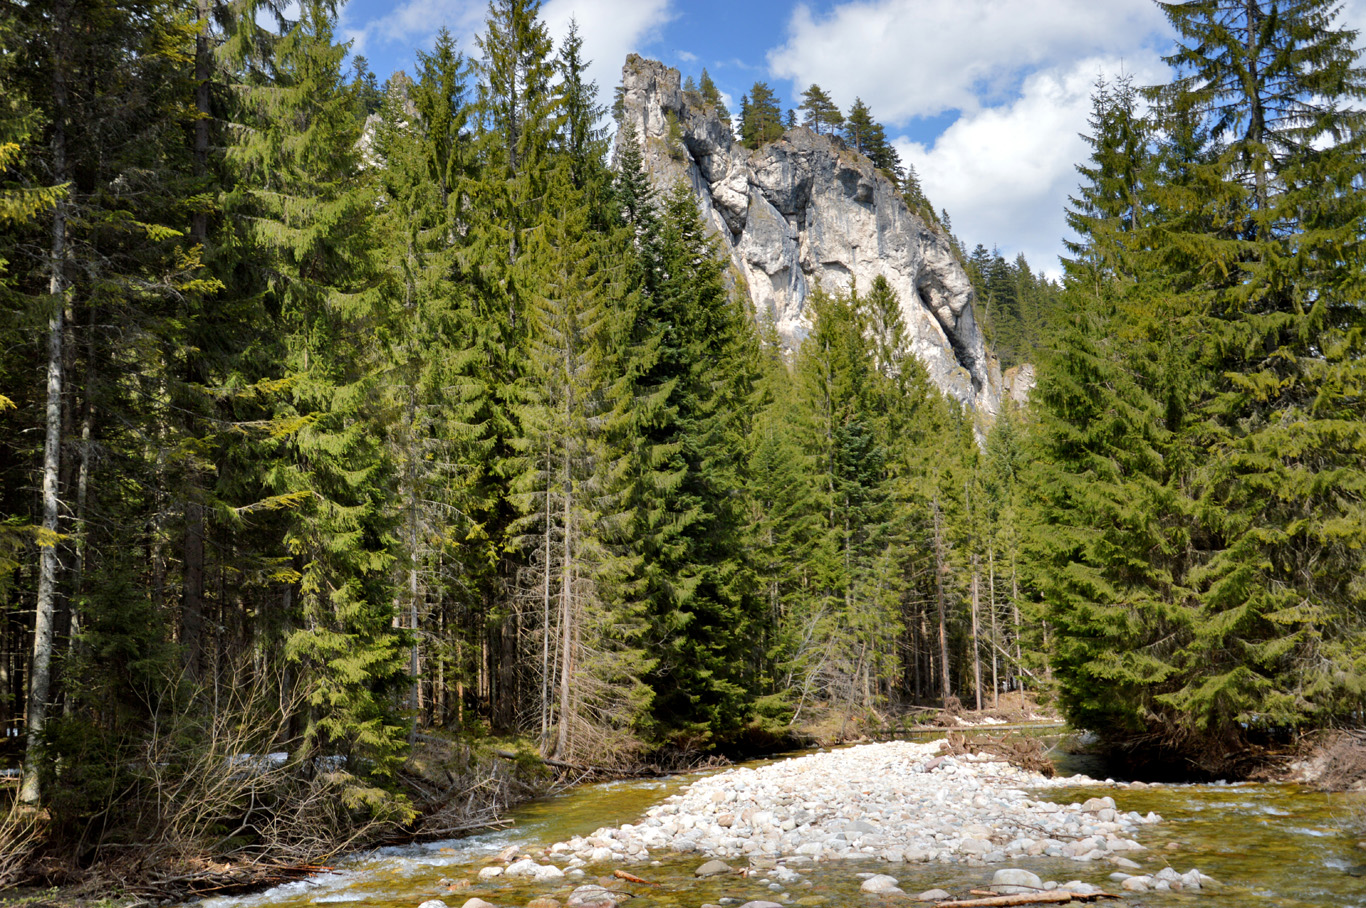 Along the trail to Chocholowska Valley